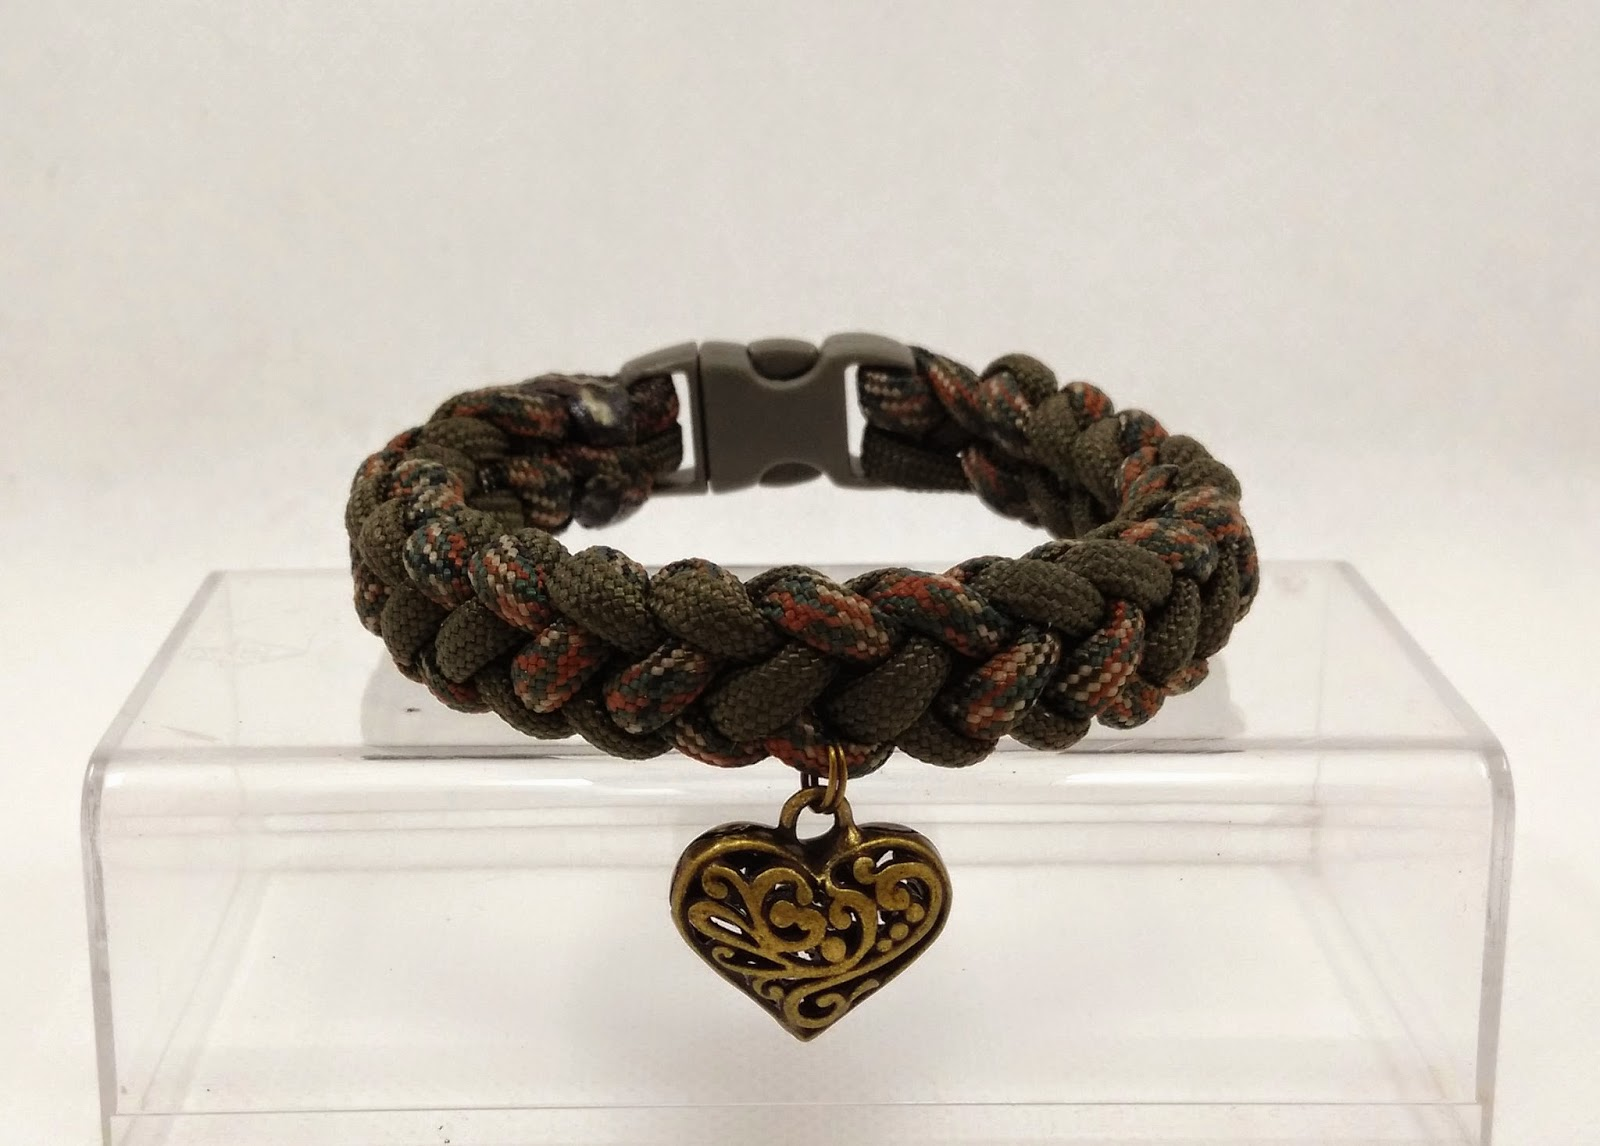 Coyote Trail Paracord Survival Bracelets with Metallic Charm